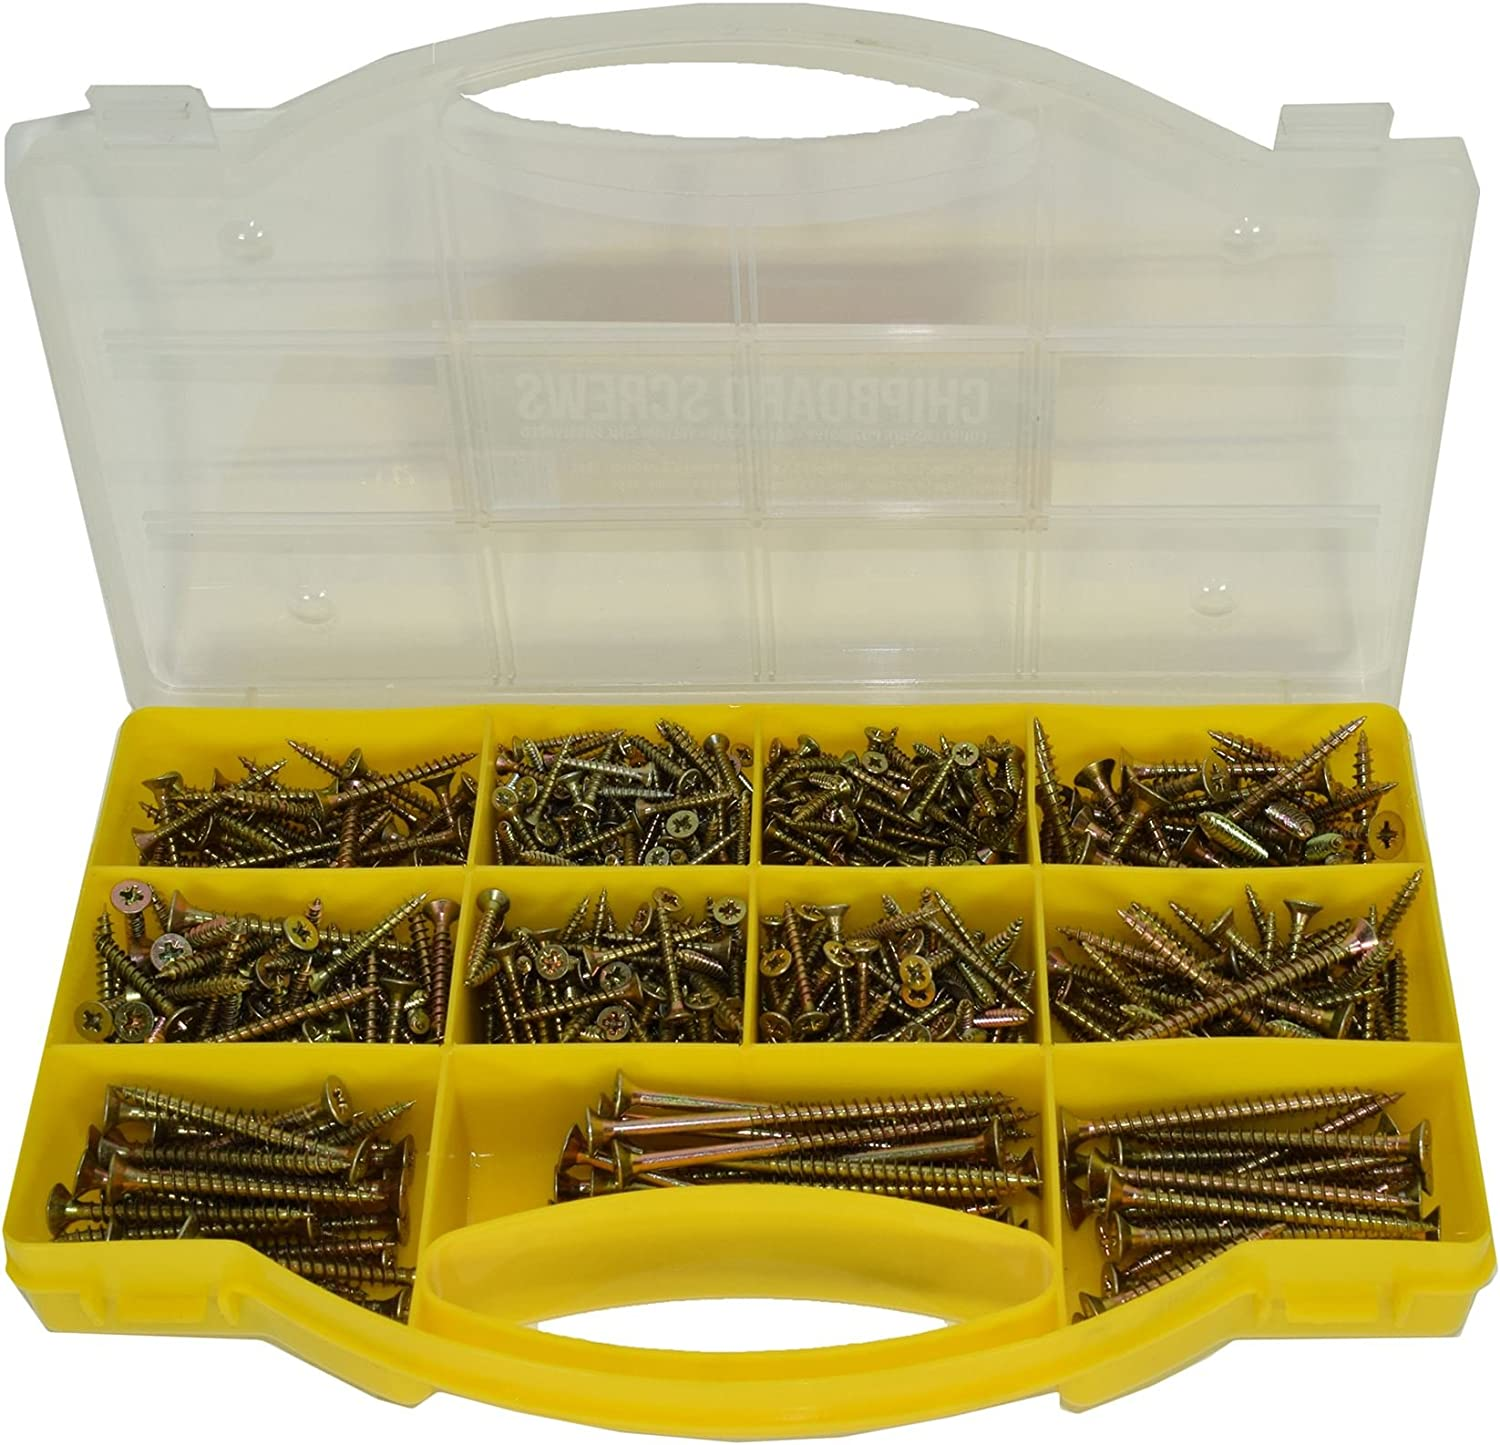 5mm 780pc Assorted Pozi Drive Chipboard And Wood Screws Countersunk Bits 3